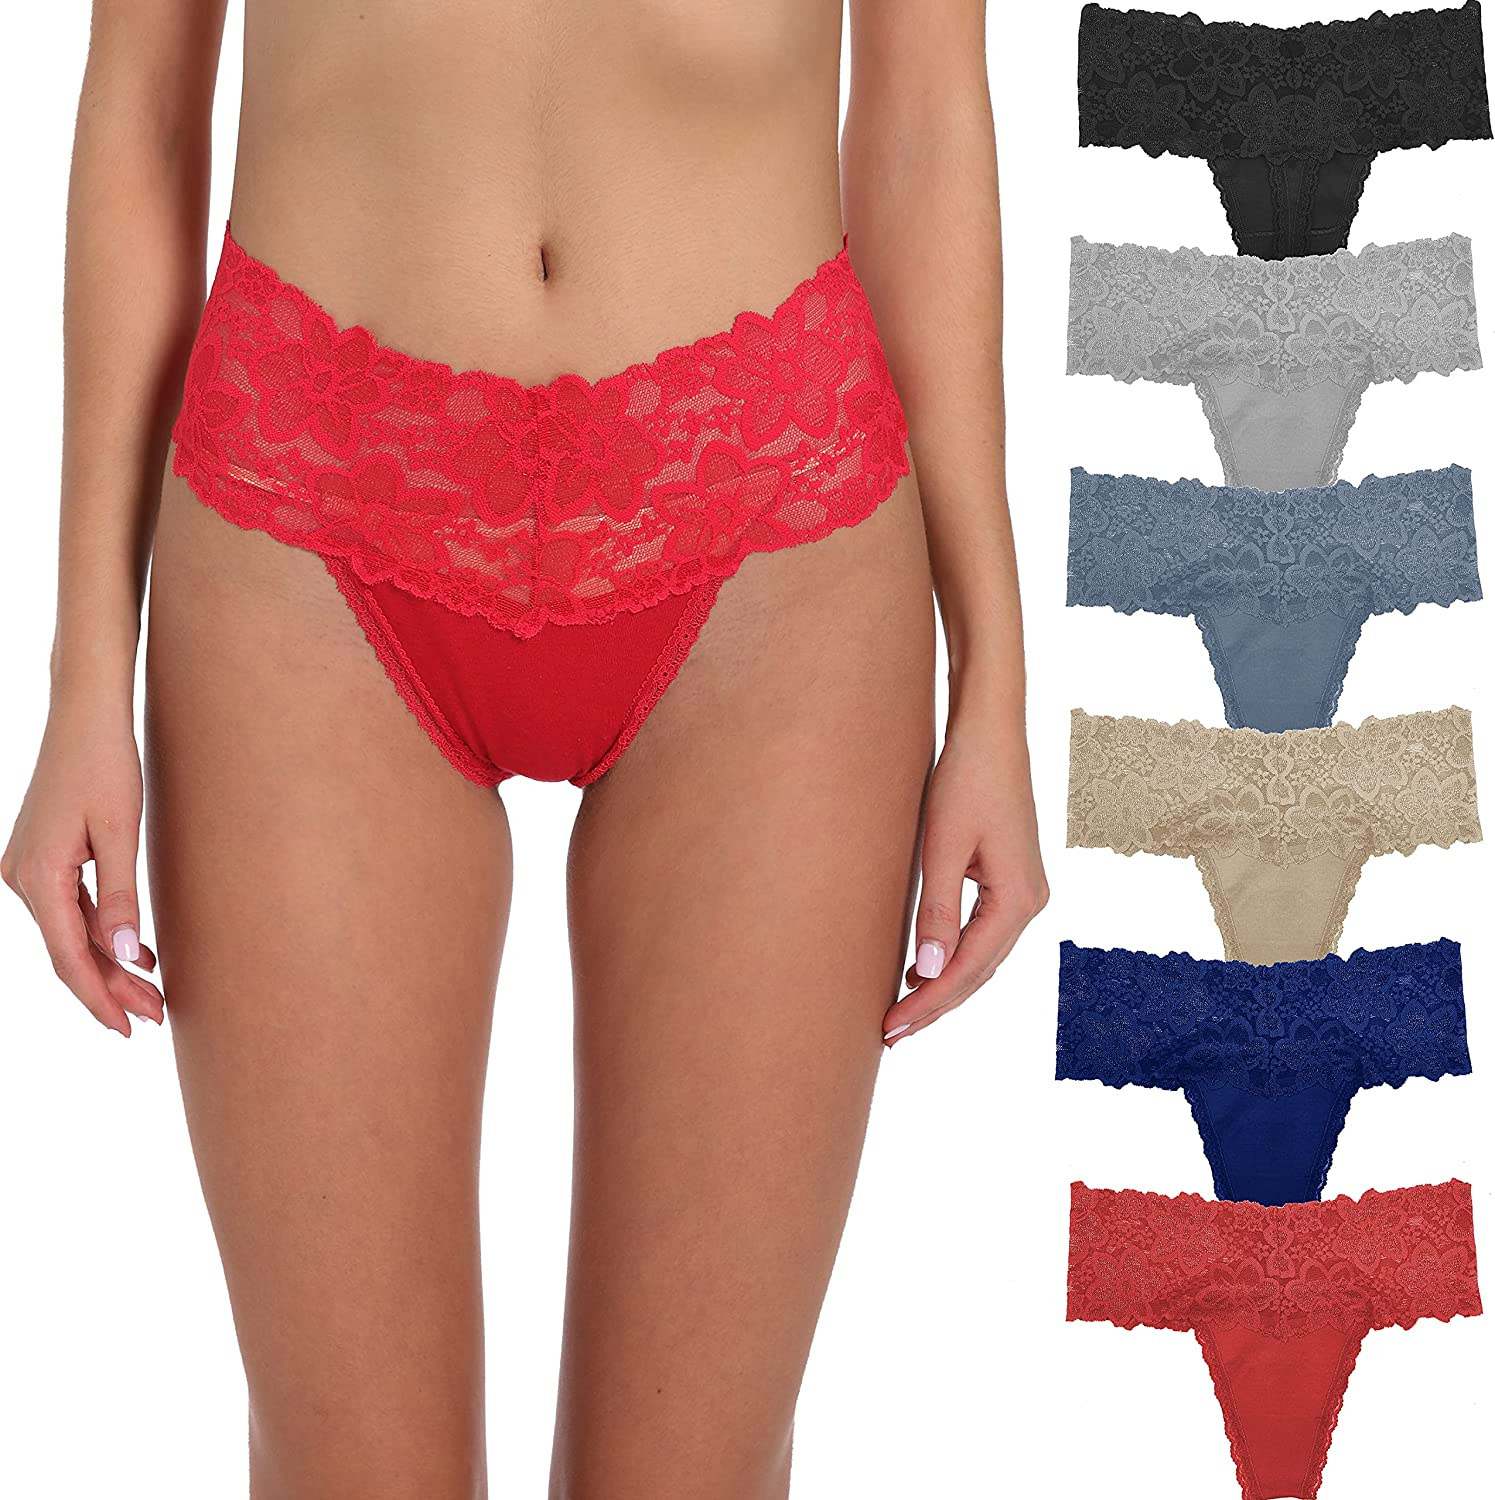 High Cut T Back Underwear Lace Fashion & Retro Thick Band Thongs for Women with Colors and Patterns Regular & Plus Size